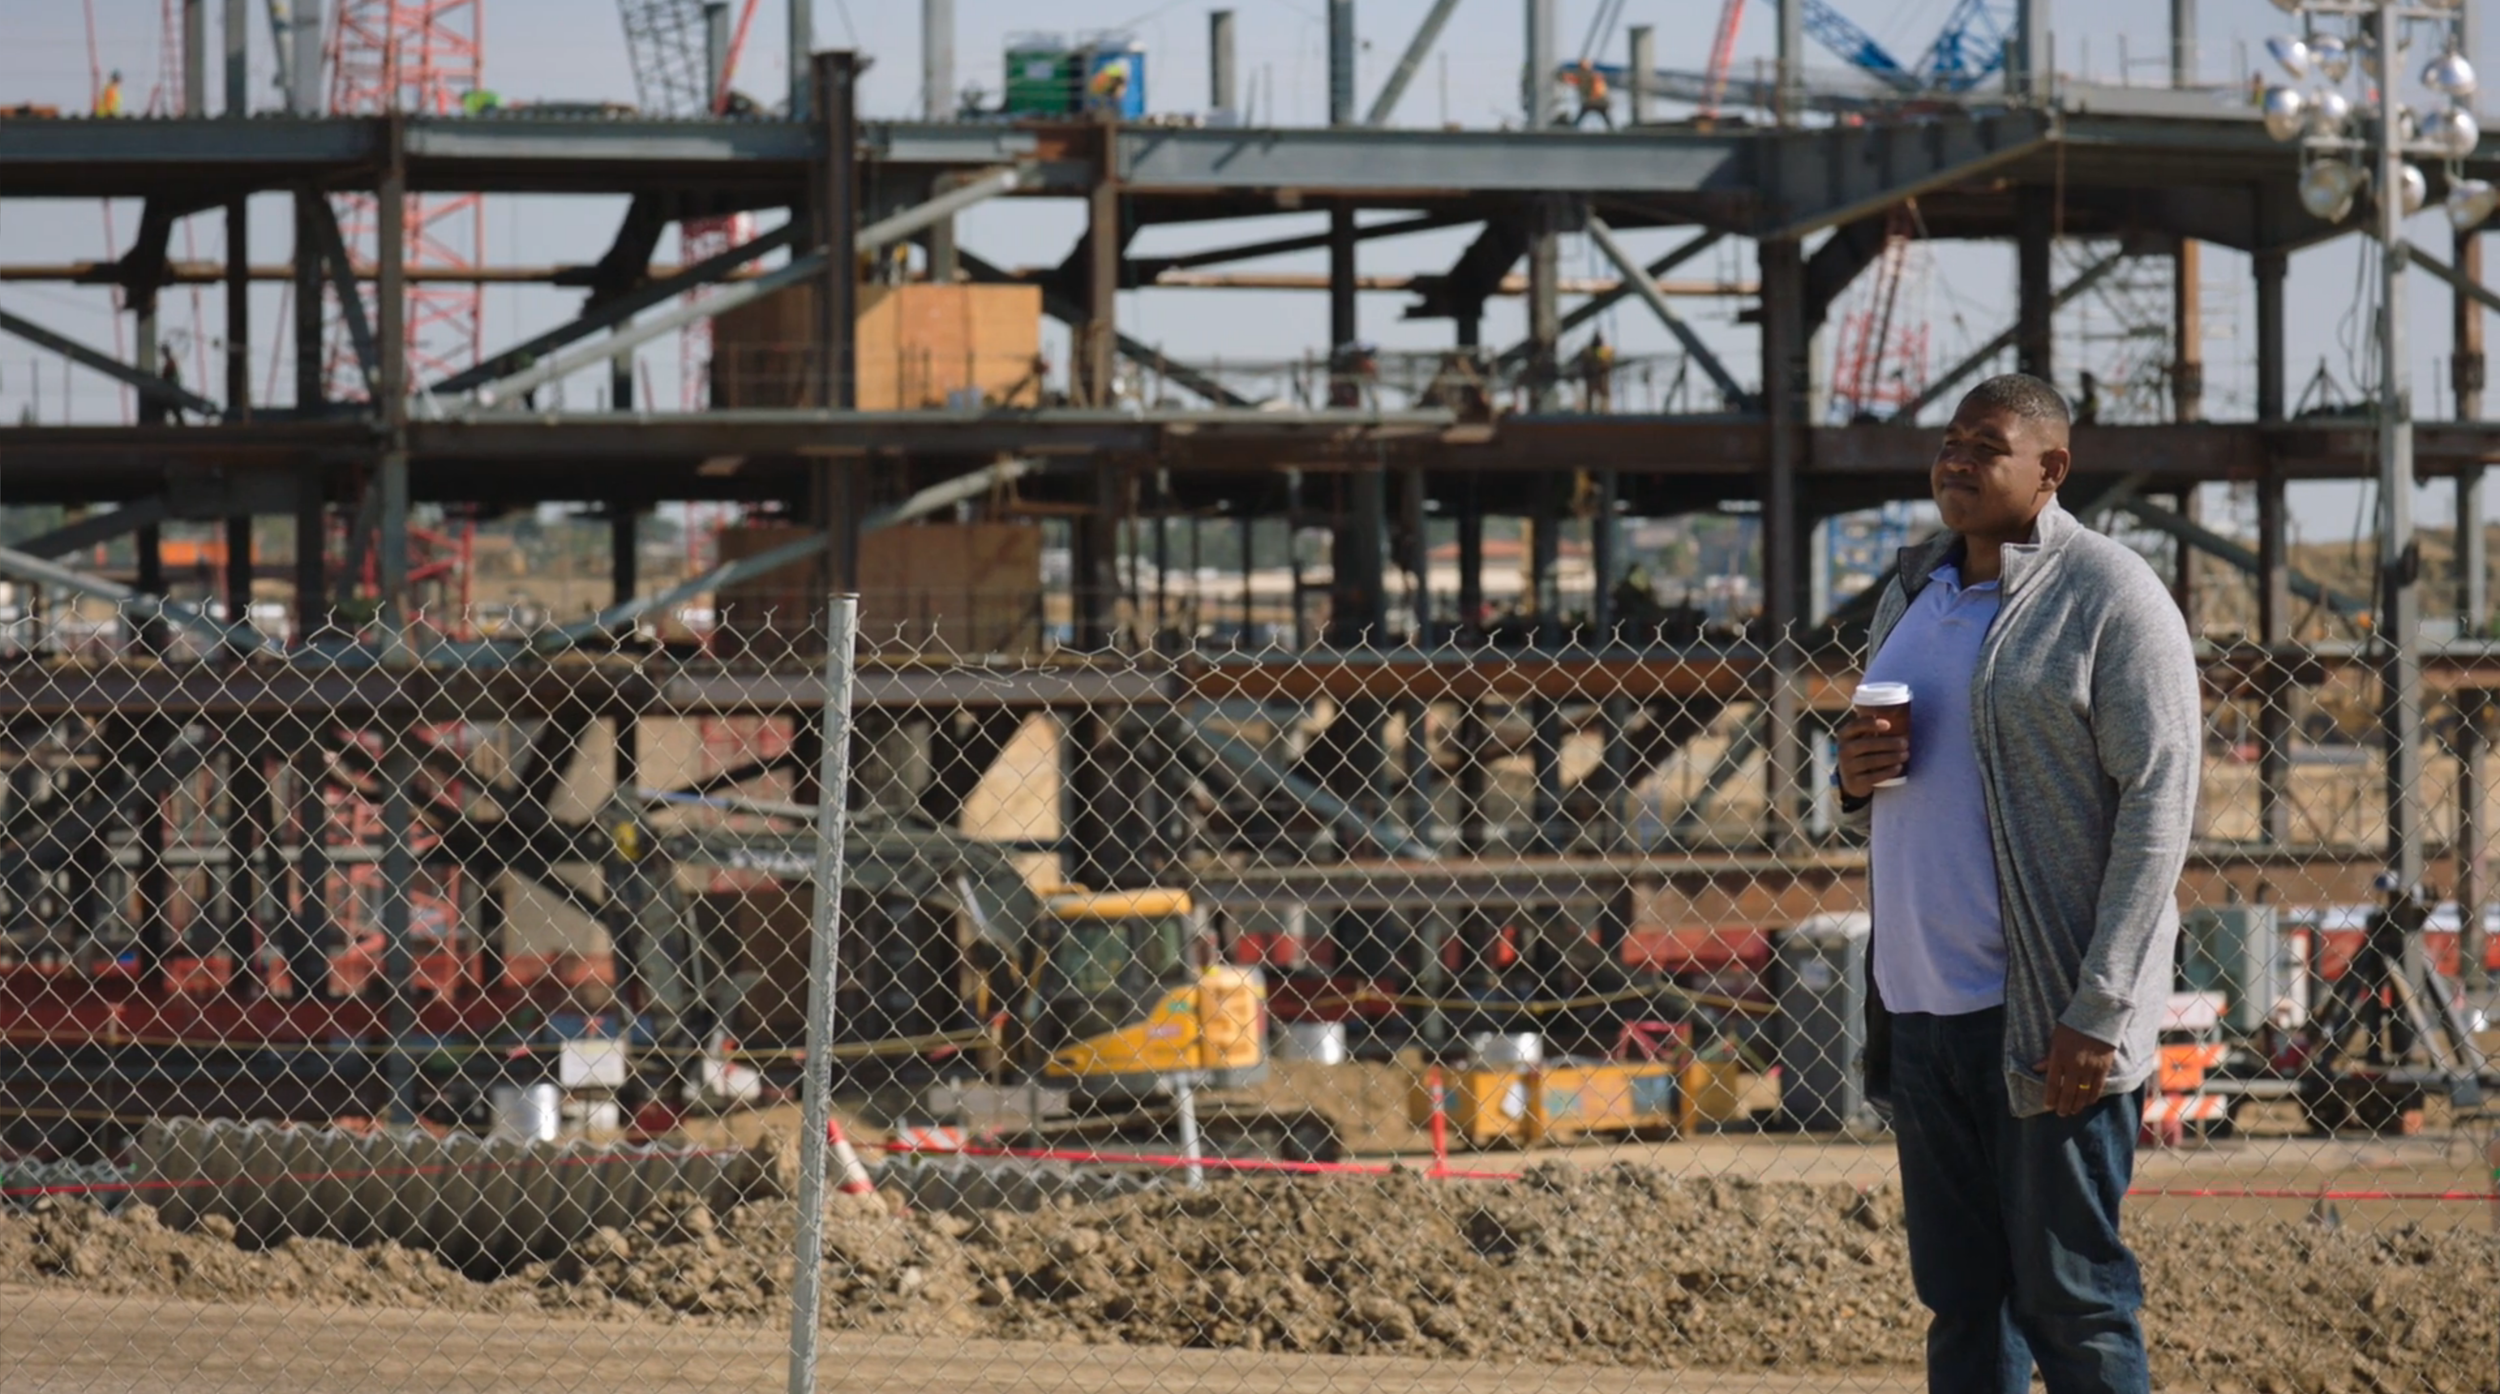 An underdressed Charles Greane loiters around a construction site.